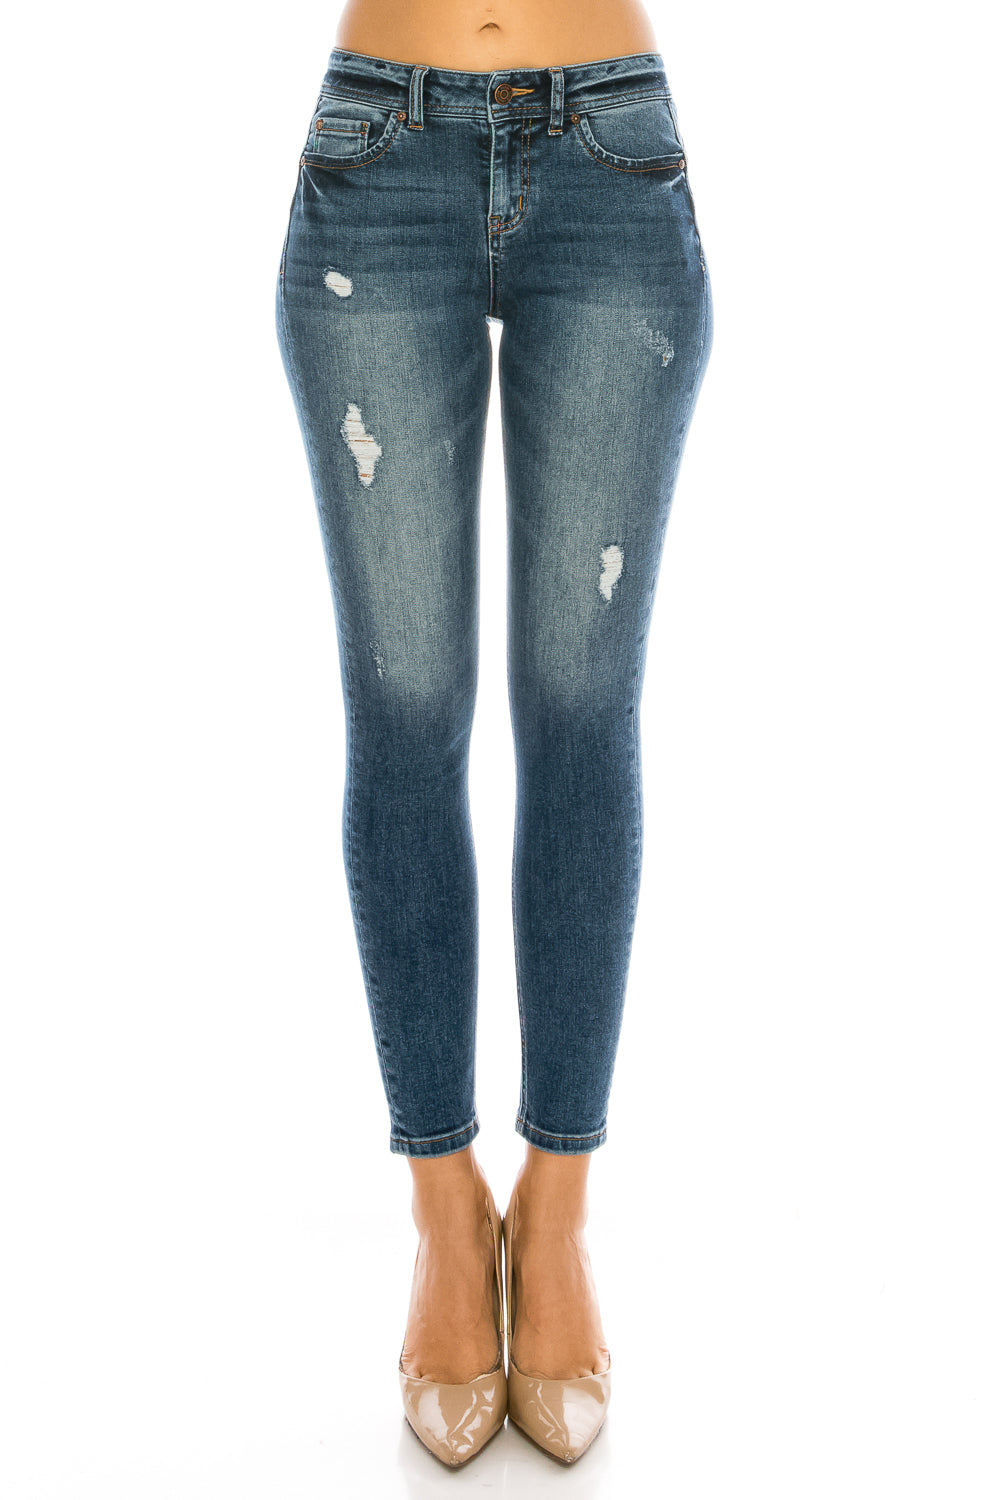 Mid Rise Push Up Ankle Skinny Jeans - EP3128